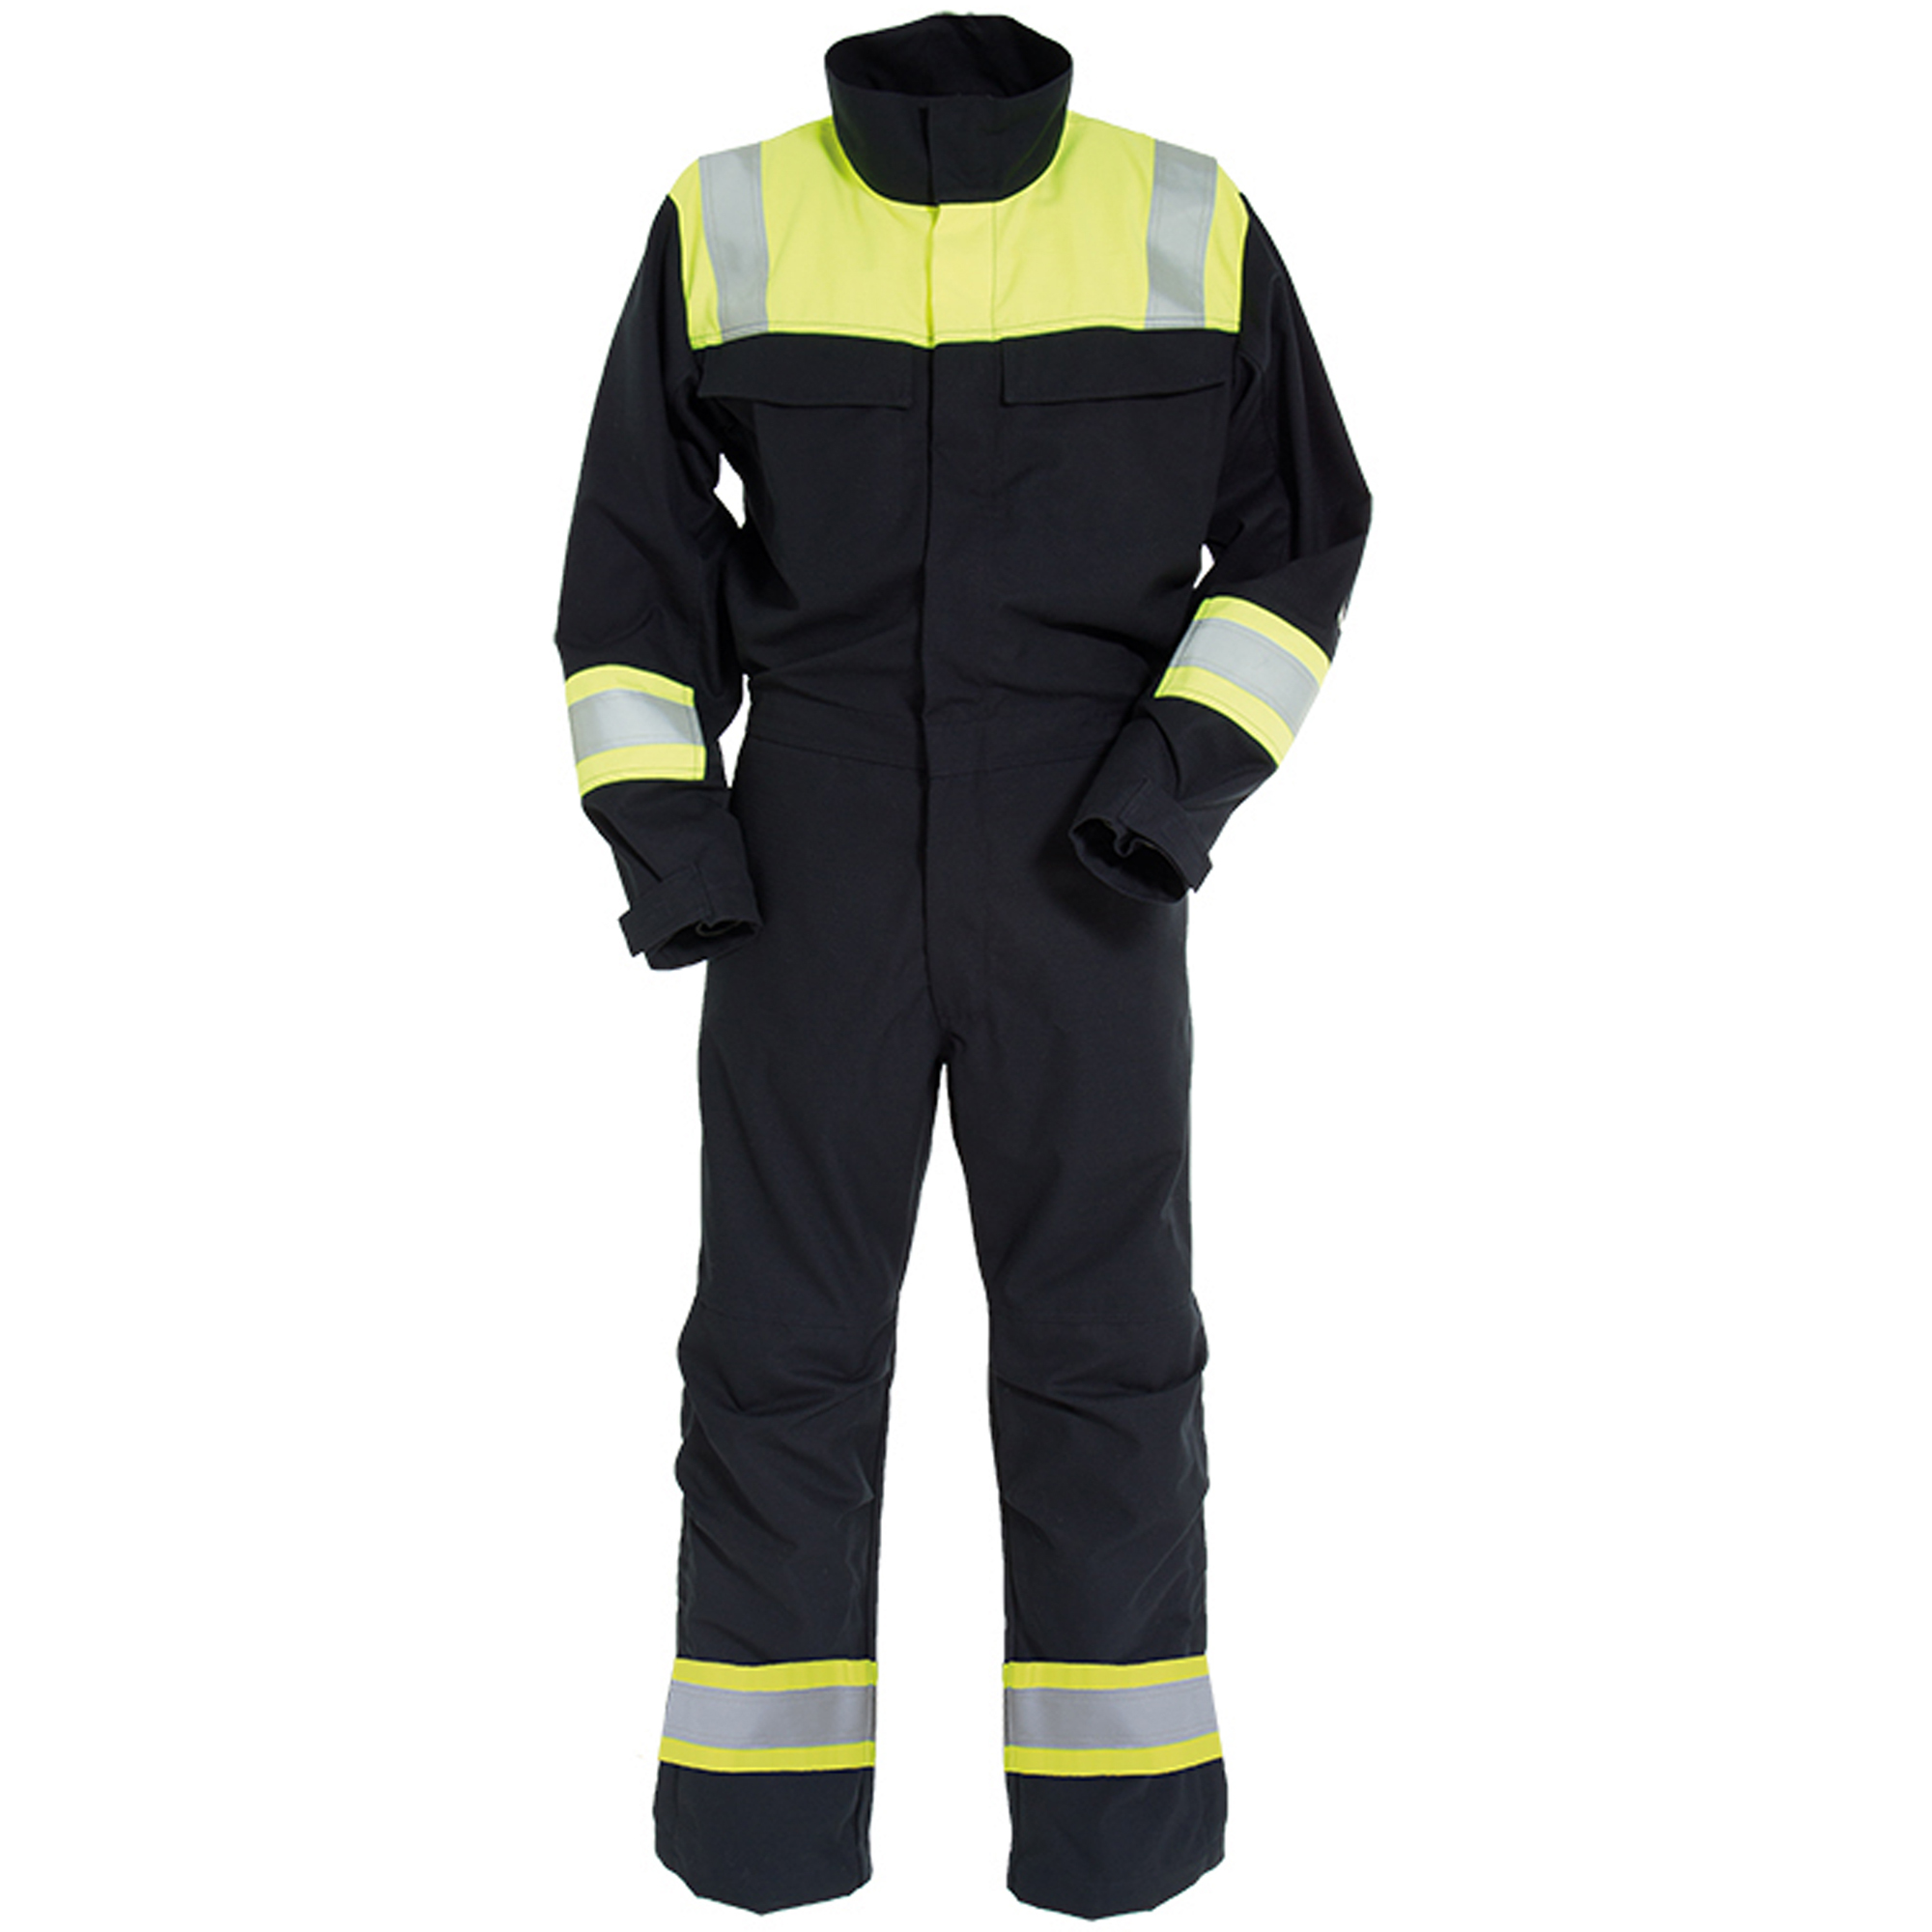 TRANEMO 6011 81 NON-METAL ARC FLASH BOILERSUIT - 9.5 CAL/CM2